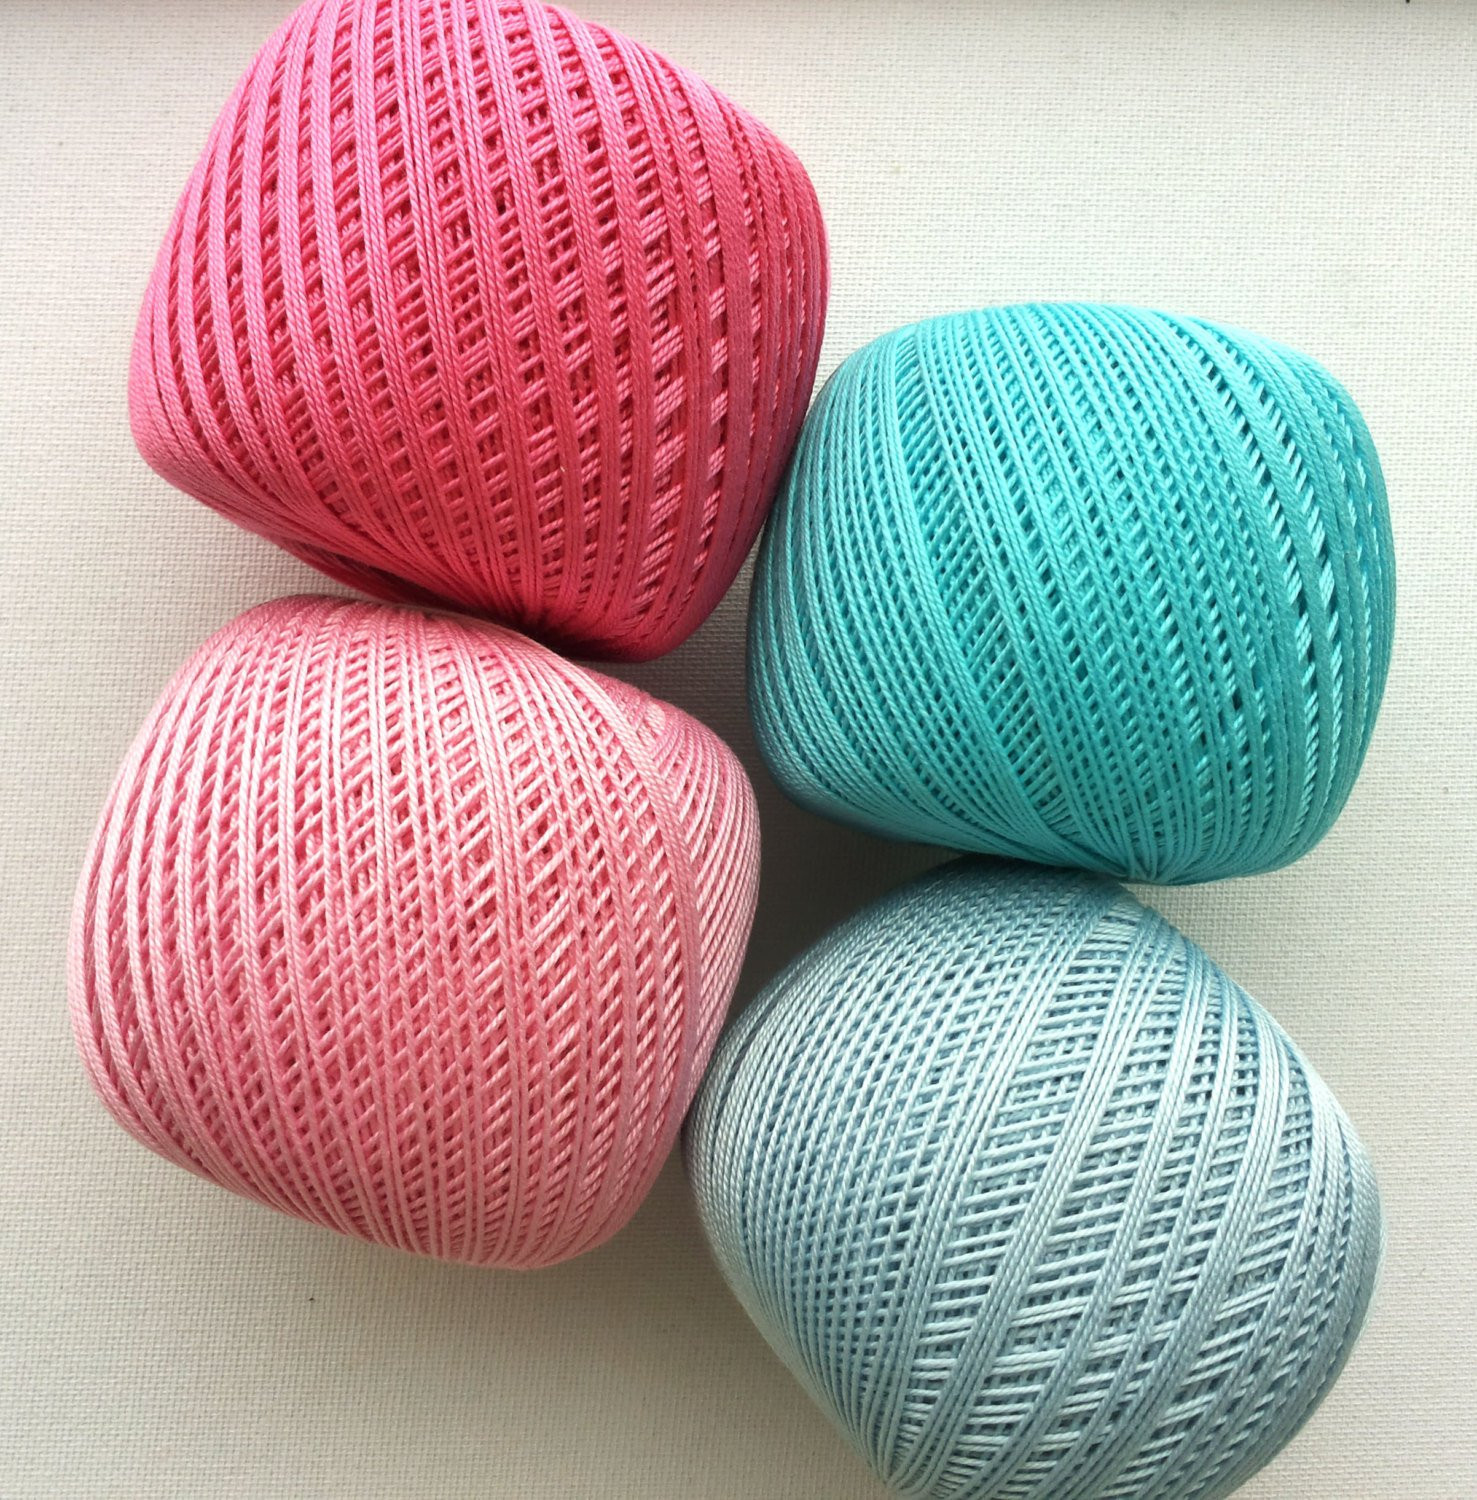 Crochet Threads Size 10 Elegant Crochet Cotton Yarn 10 Size 10 Thread 3 Ply Cotton Yarn Of Top 42 Ideas Crochet Threads Size 10